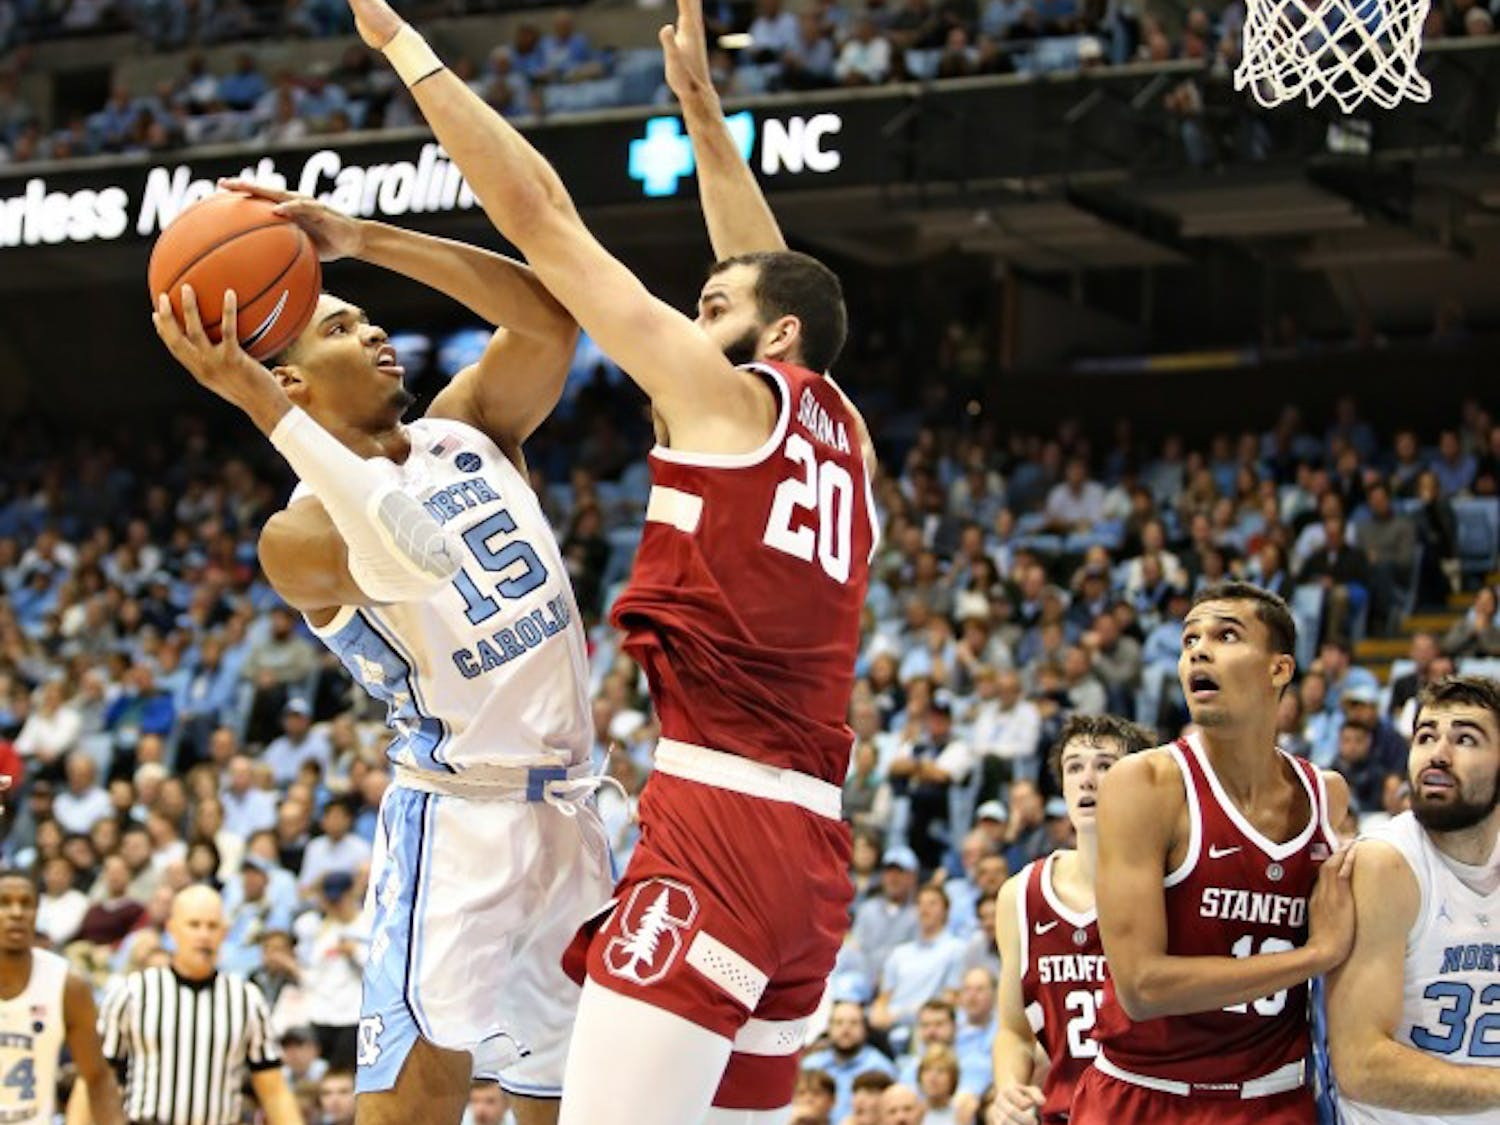 UNC forward Garrison Brooks (15) pulls up to shoot while being guarded by Stanford center Josh Sharma (20) in the Dean Smith Center on Monday, Nov. 12, 2018. UNC won 90-72 against Stanford.